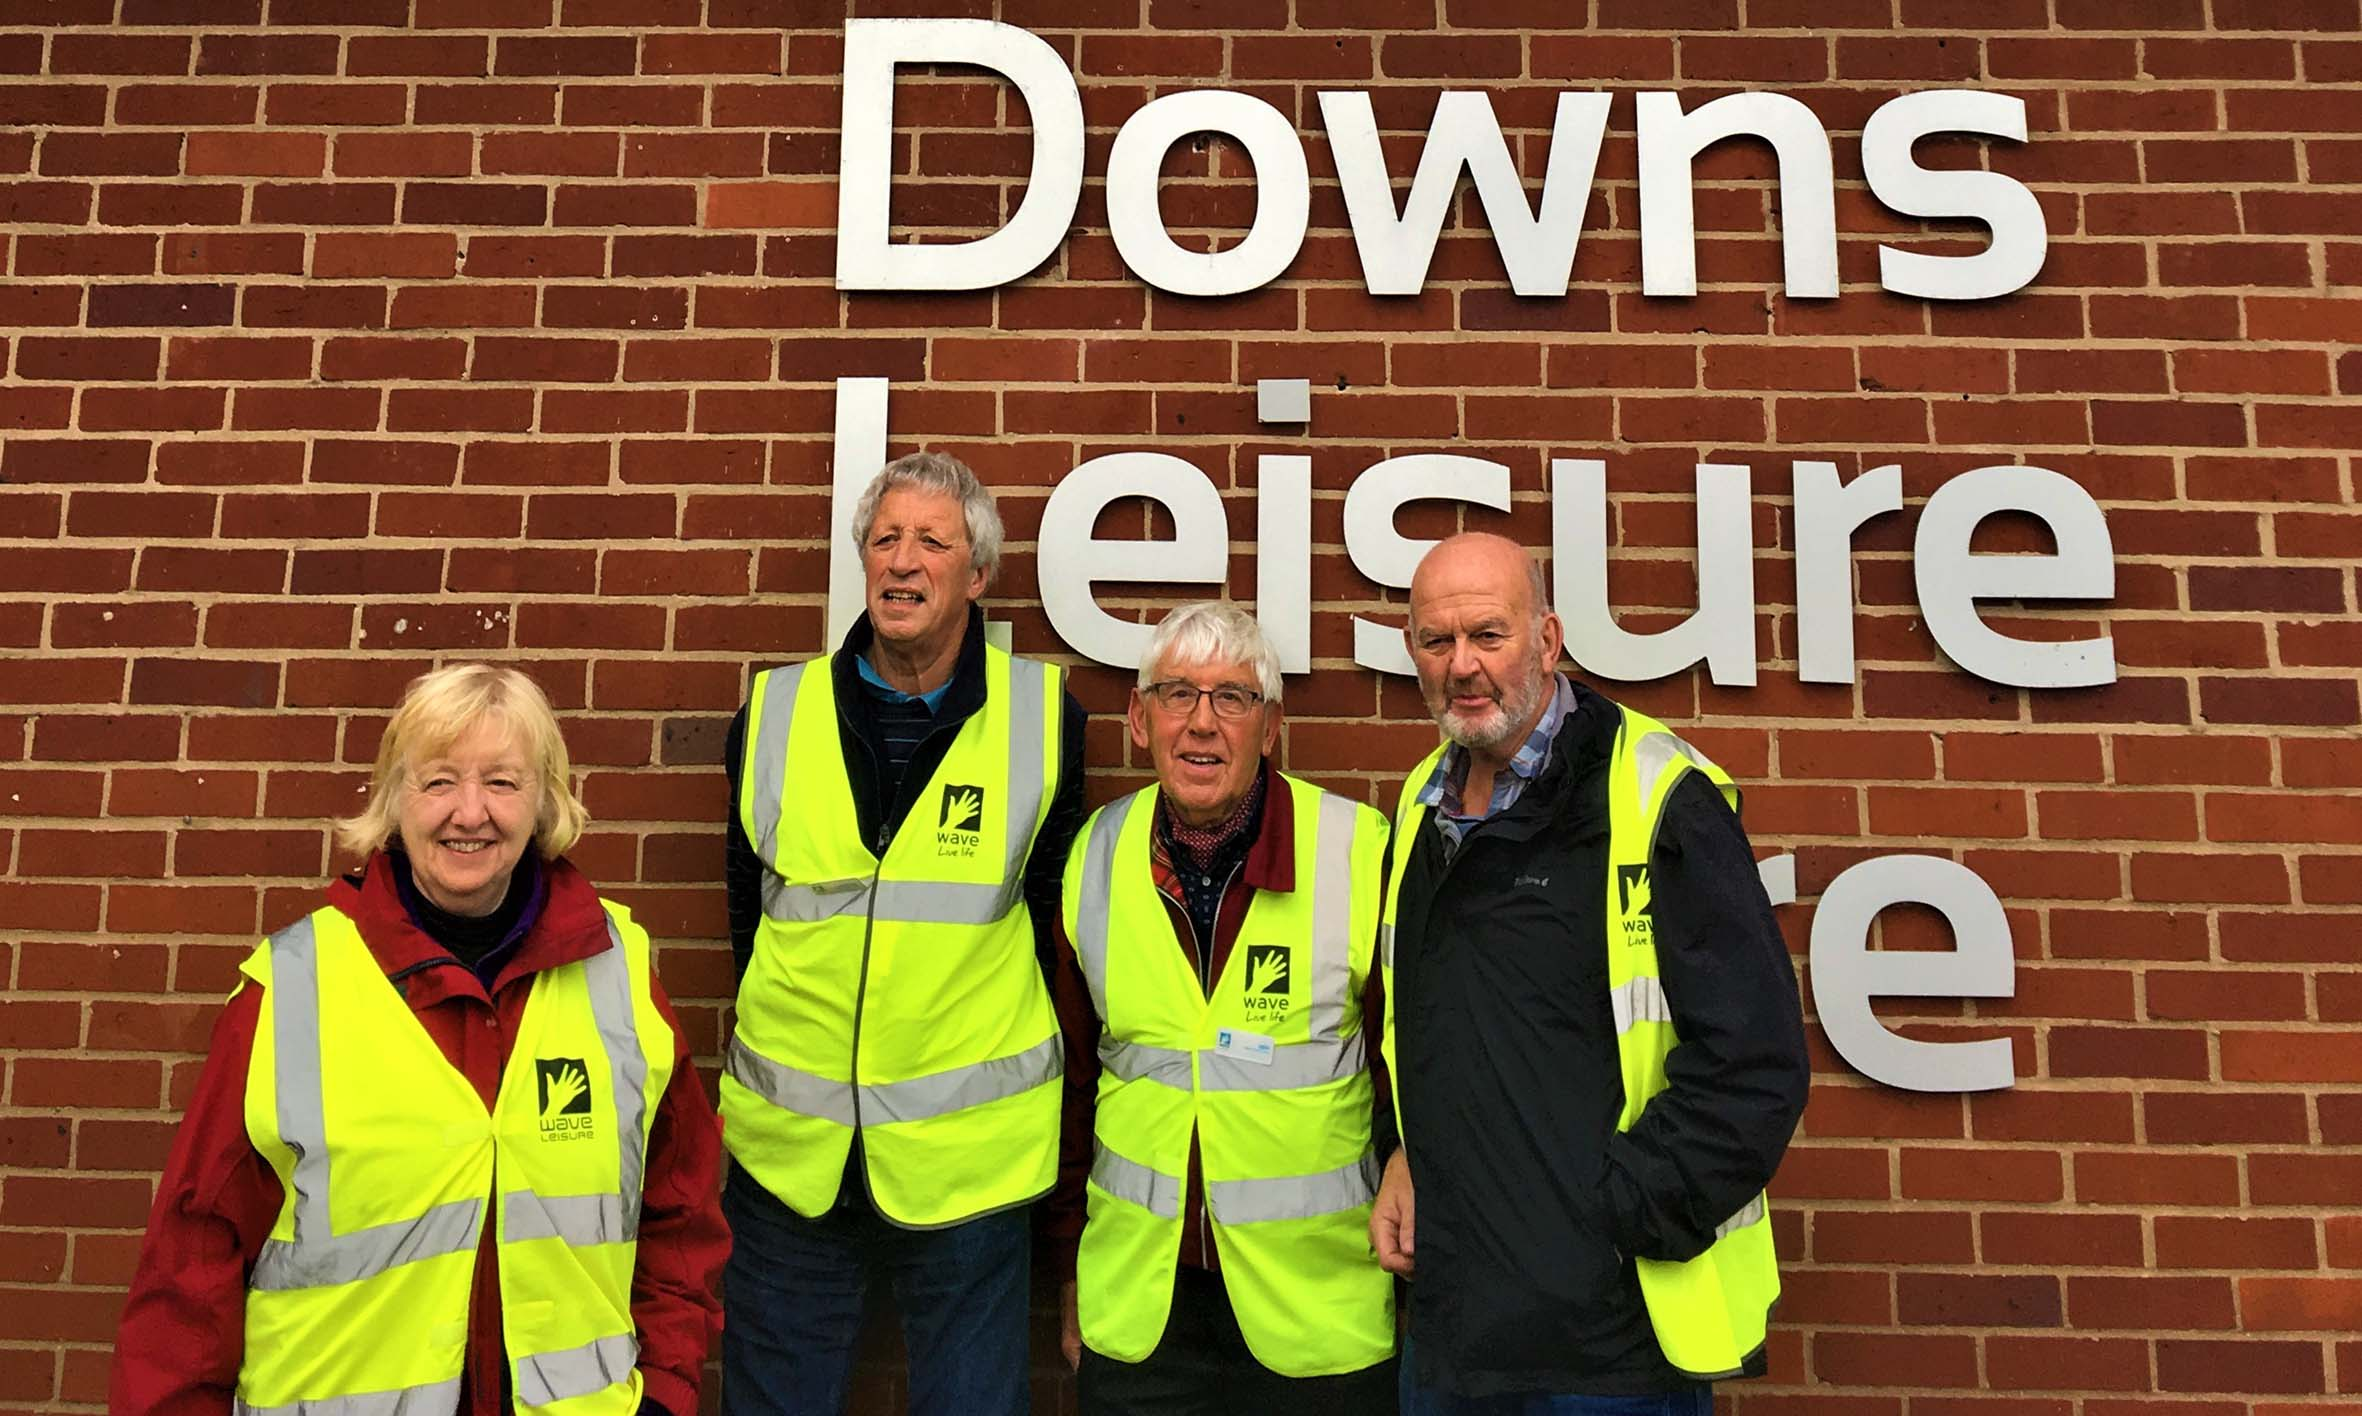 Walk Leaders at Downs Leisure Centre